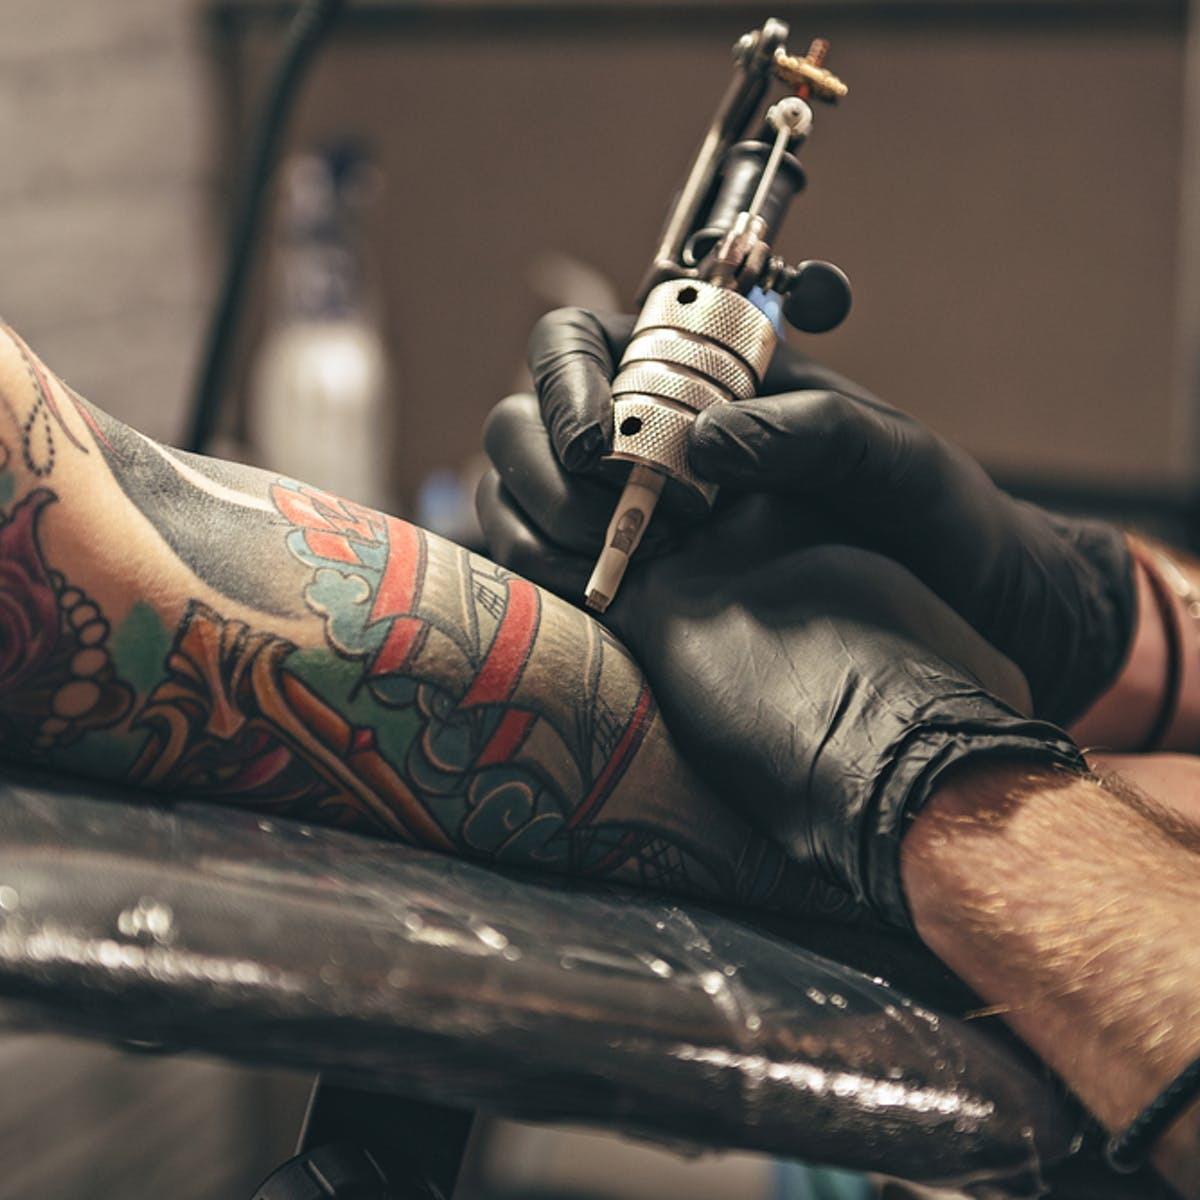 London Police Now Allowed Visible Tattoos So Is Body Art Still Rebellious